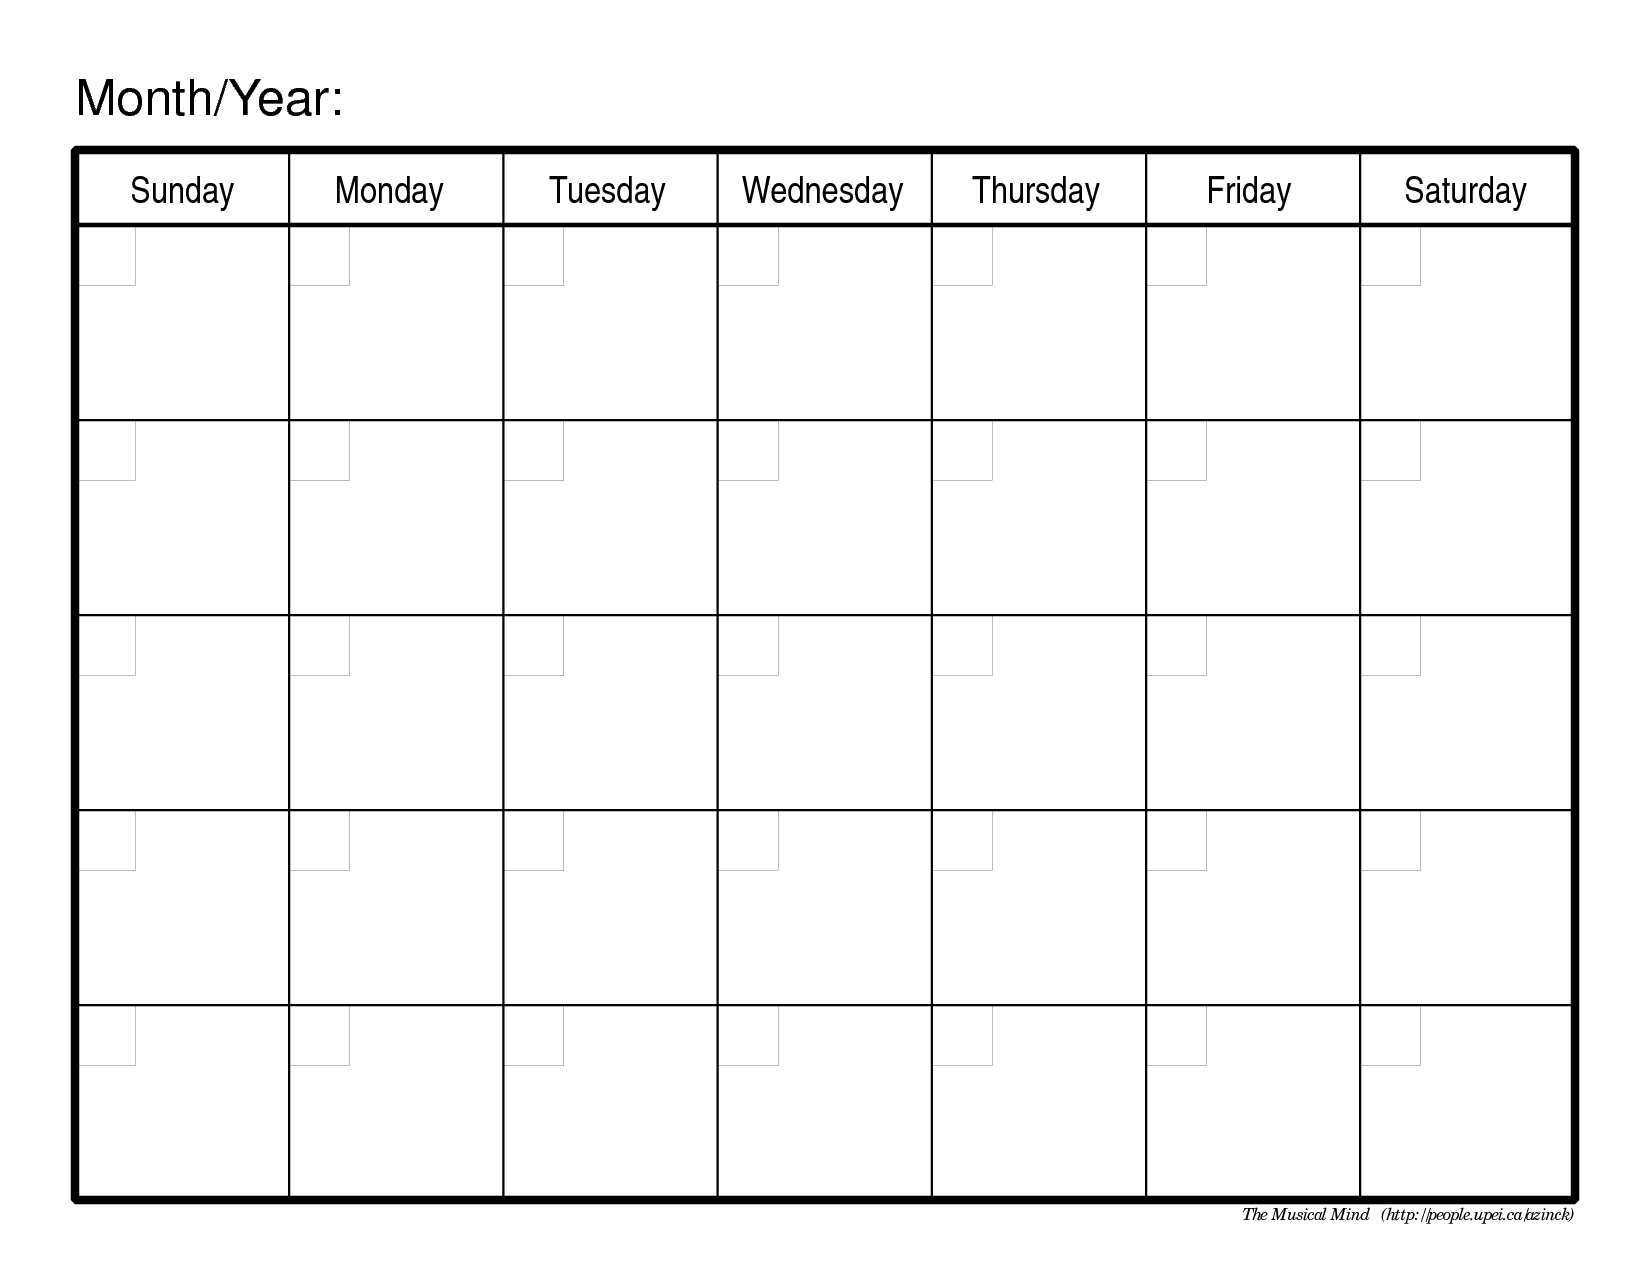 Free Monthly Schedule Template Calendars To Print Planner Word pertaining to Full Size Printable Monthly Calendars